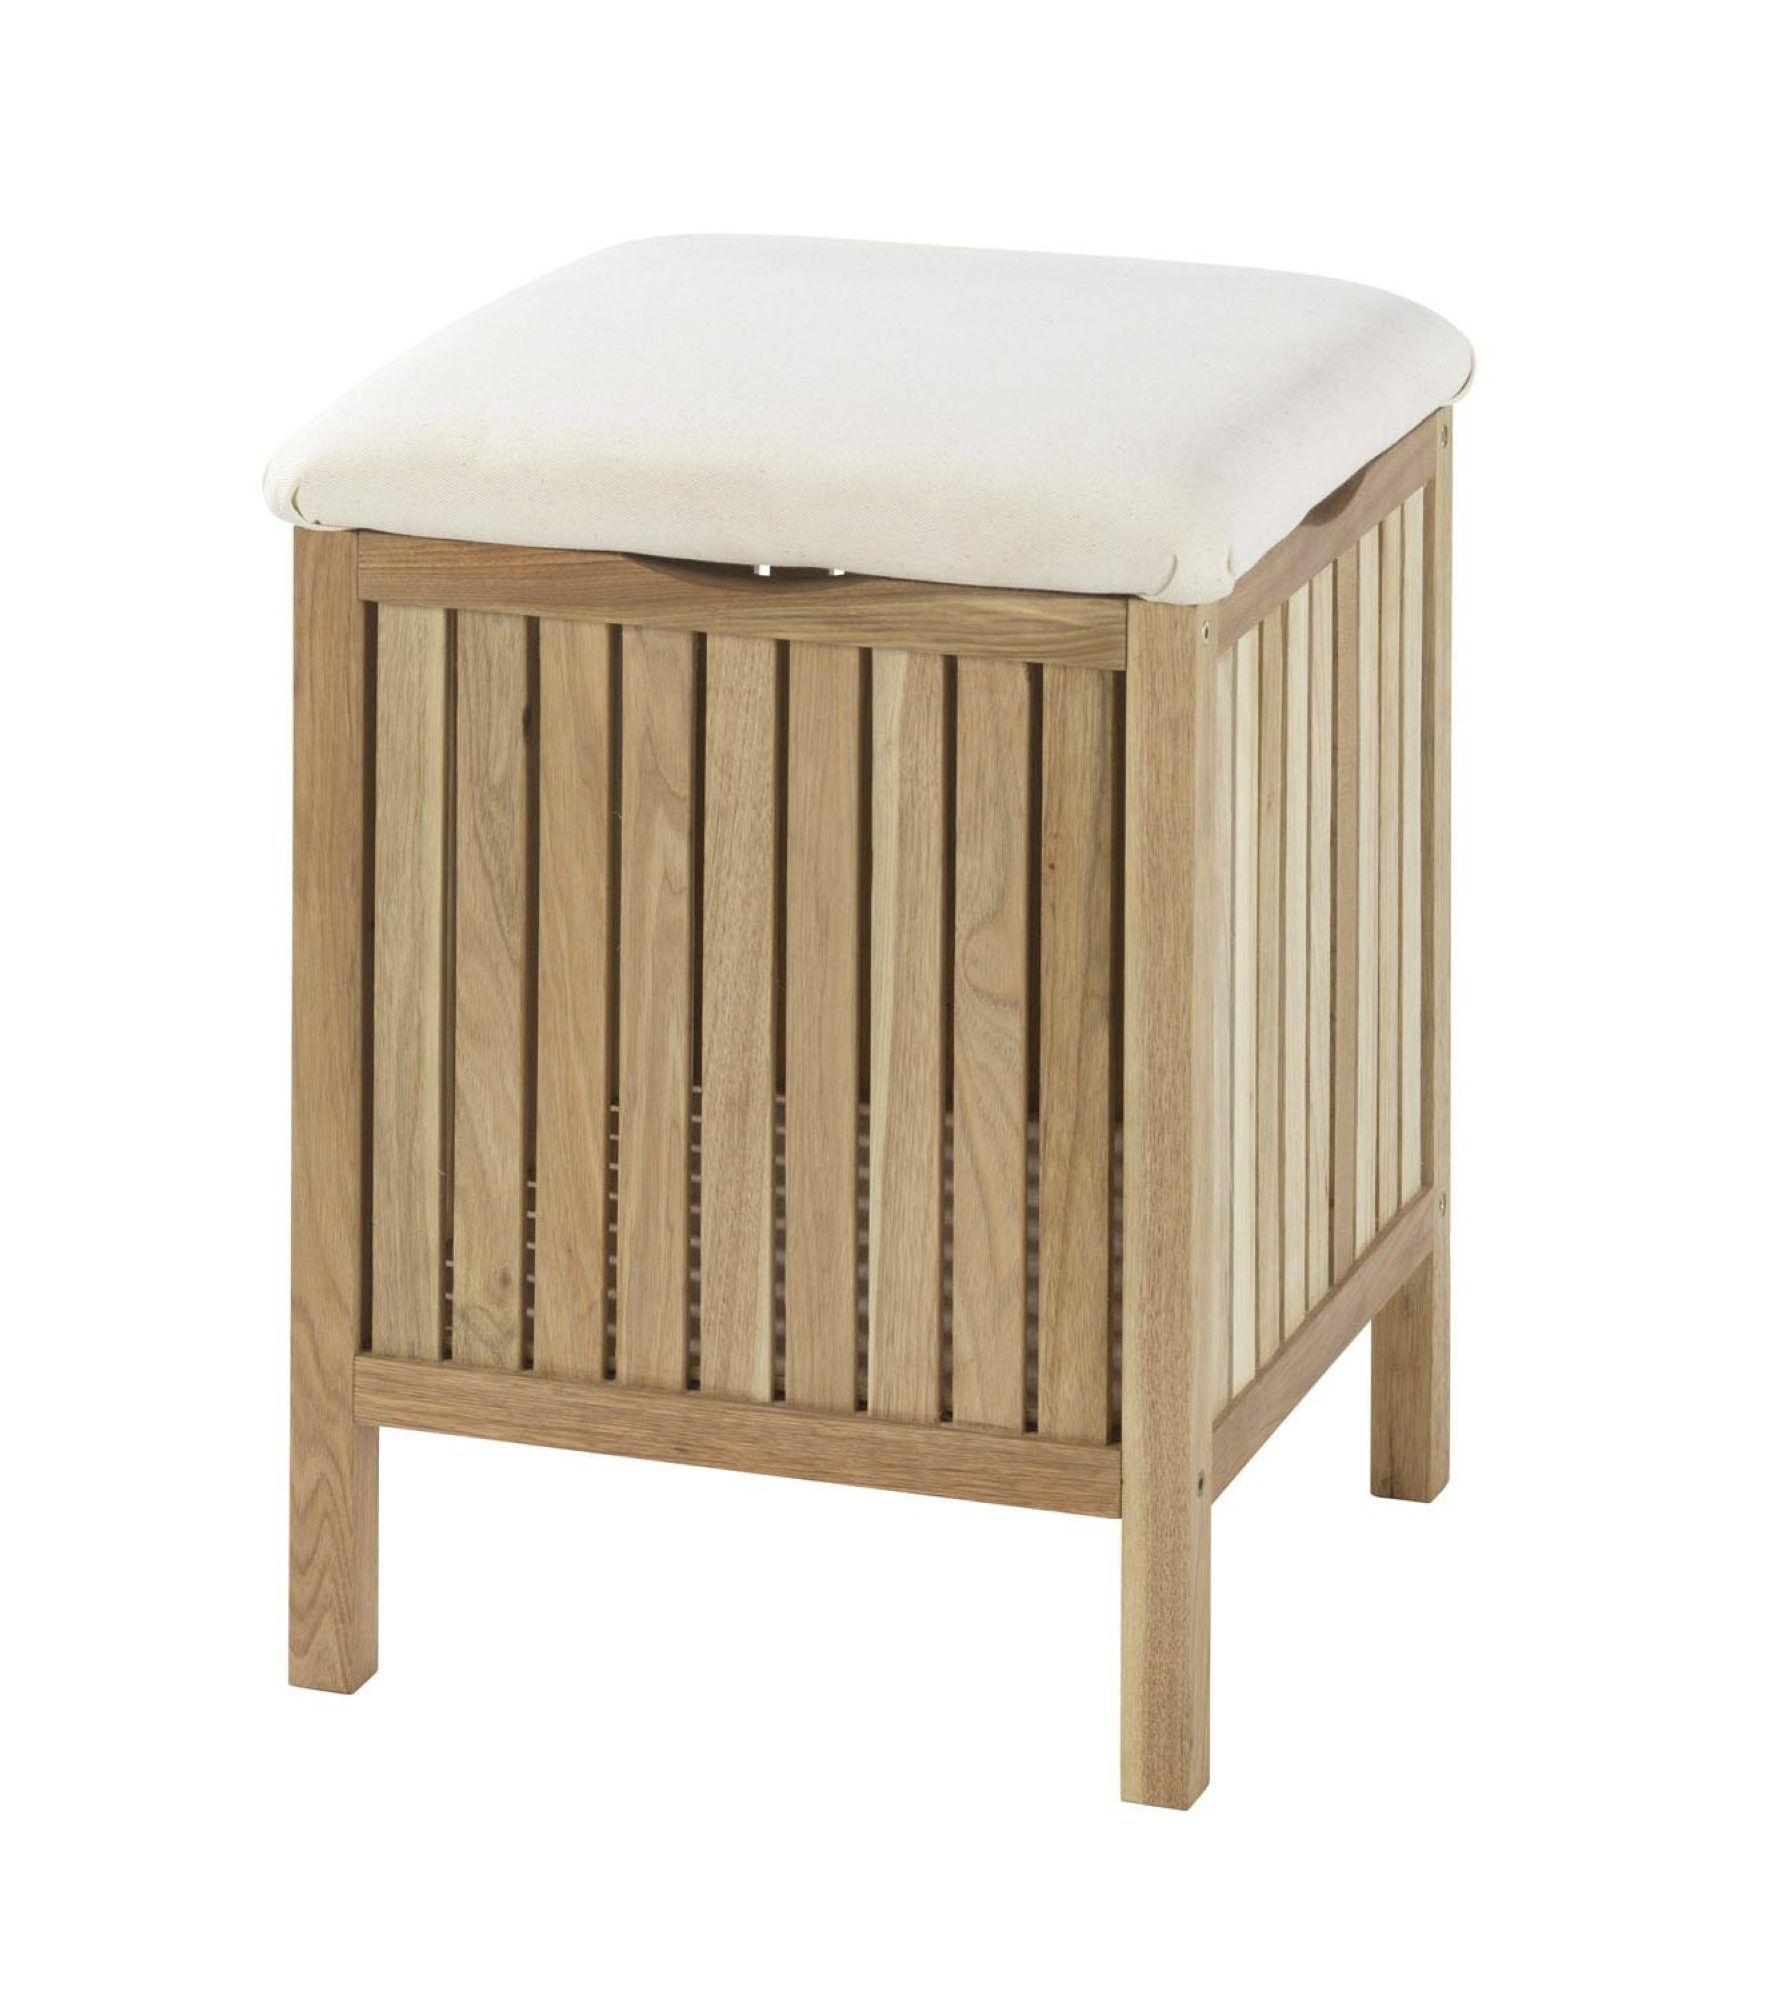 Hocker Norway Lbh 39x39x52 Cm Badhocker Hocker Walnußholz